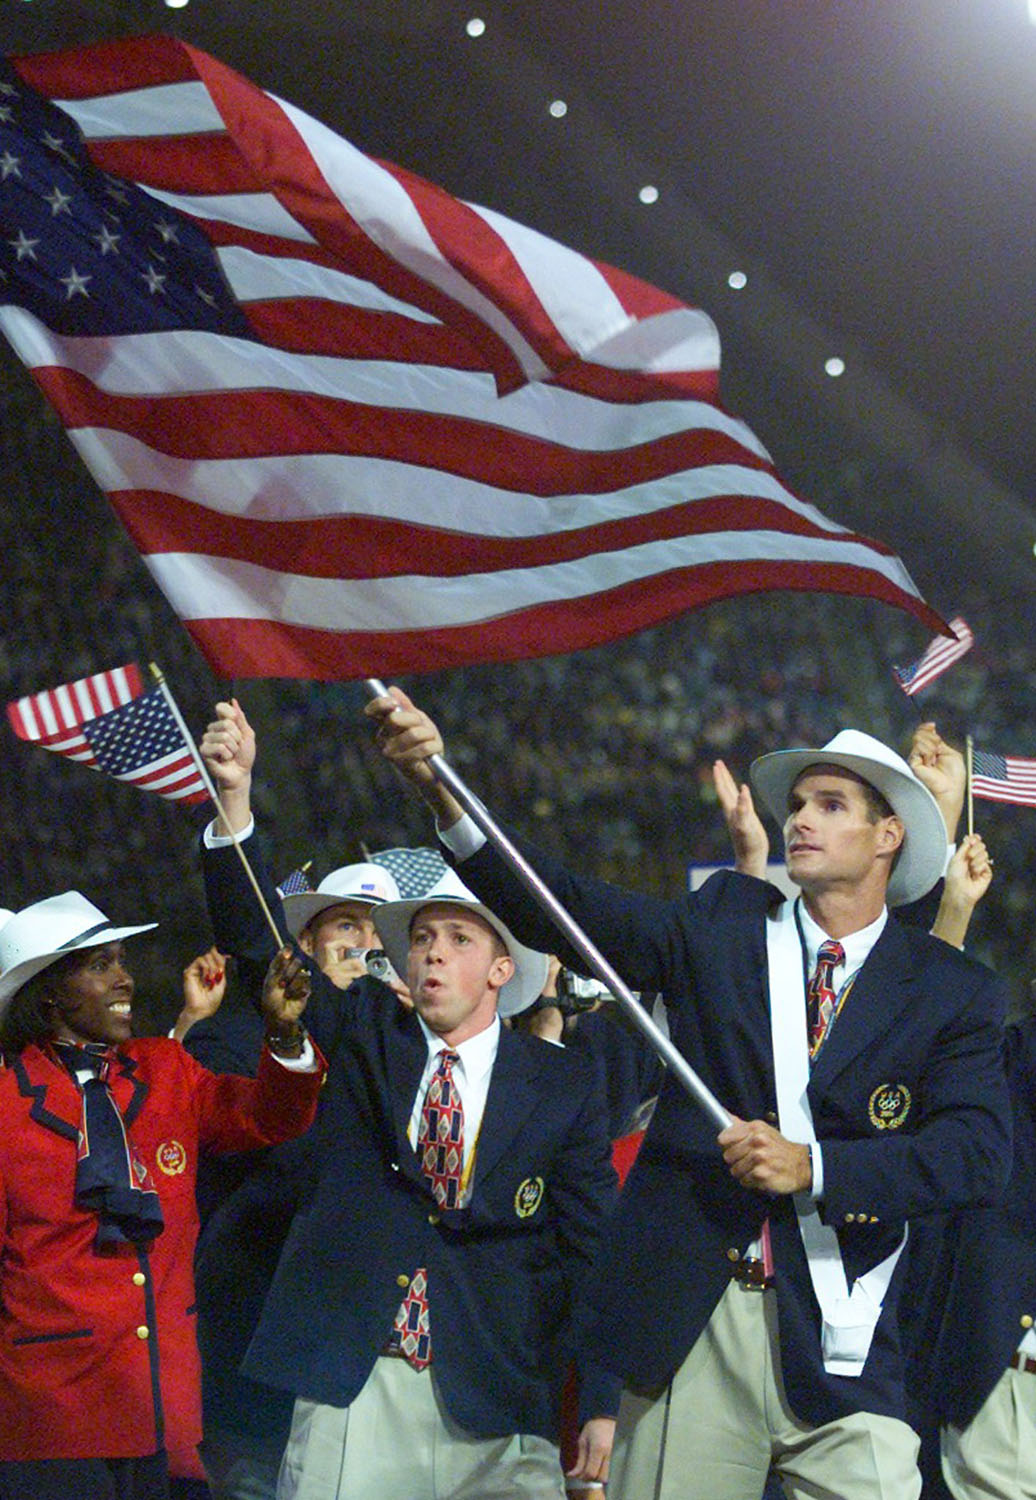 American canoeist Cliff Meidl carries his country's flag during the opening ceremony of Sydney's Olympic Games, Sept. 15, 2000.